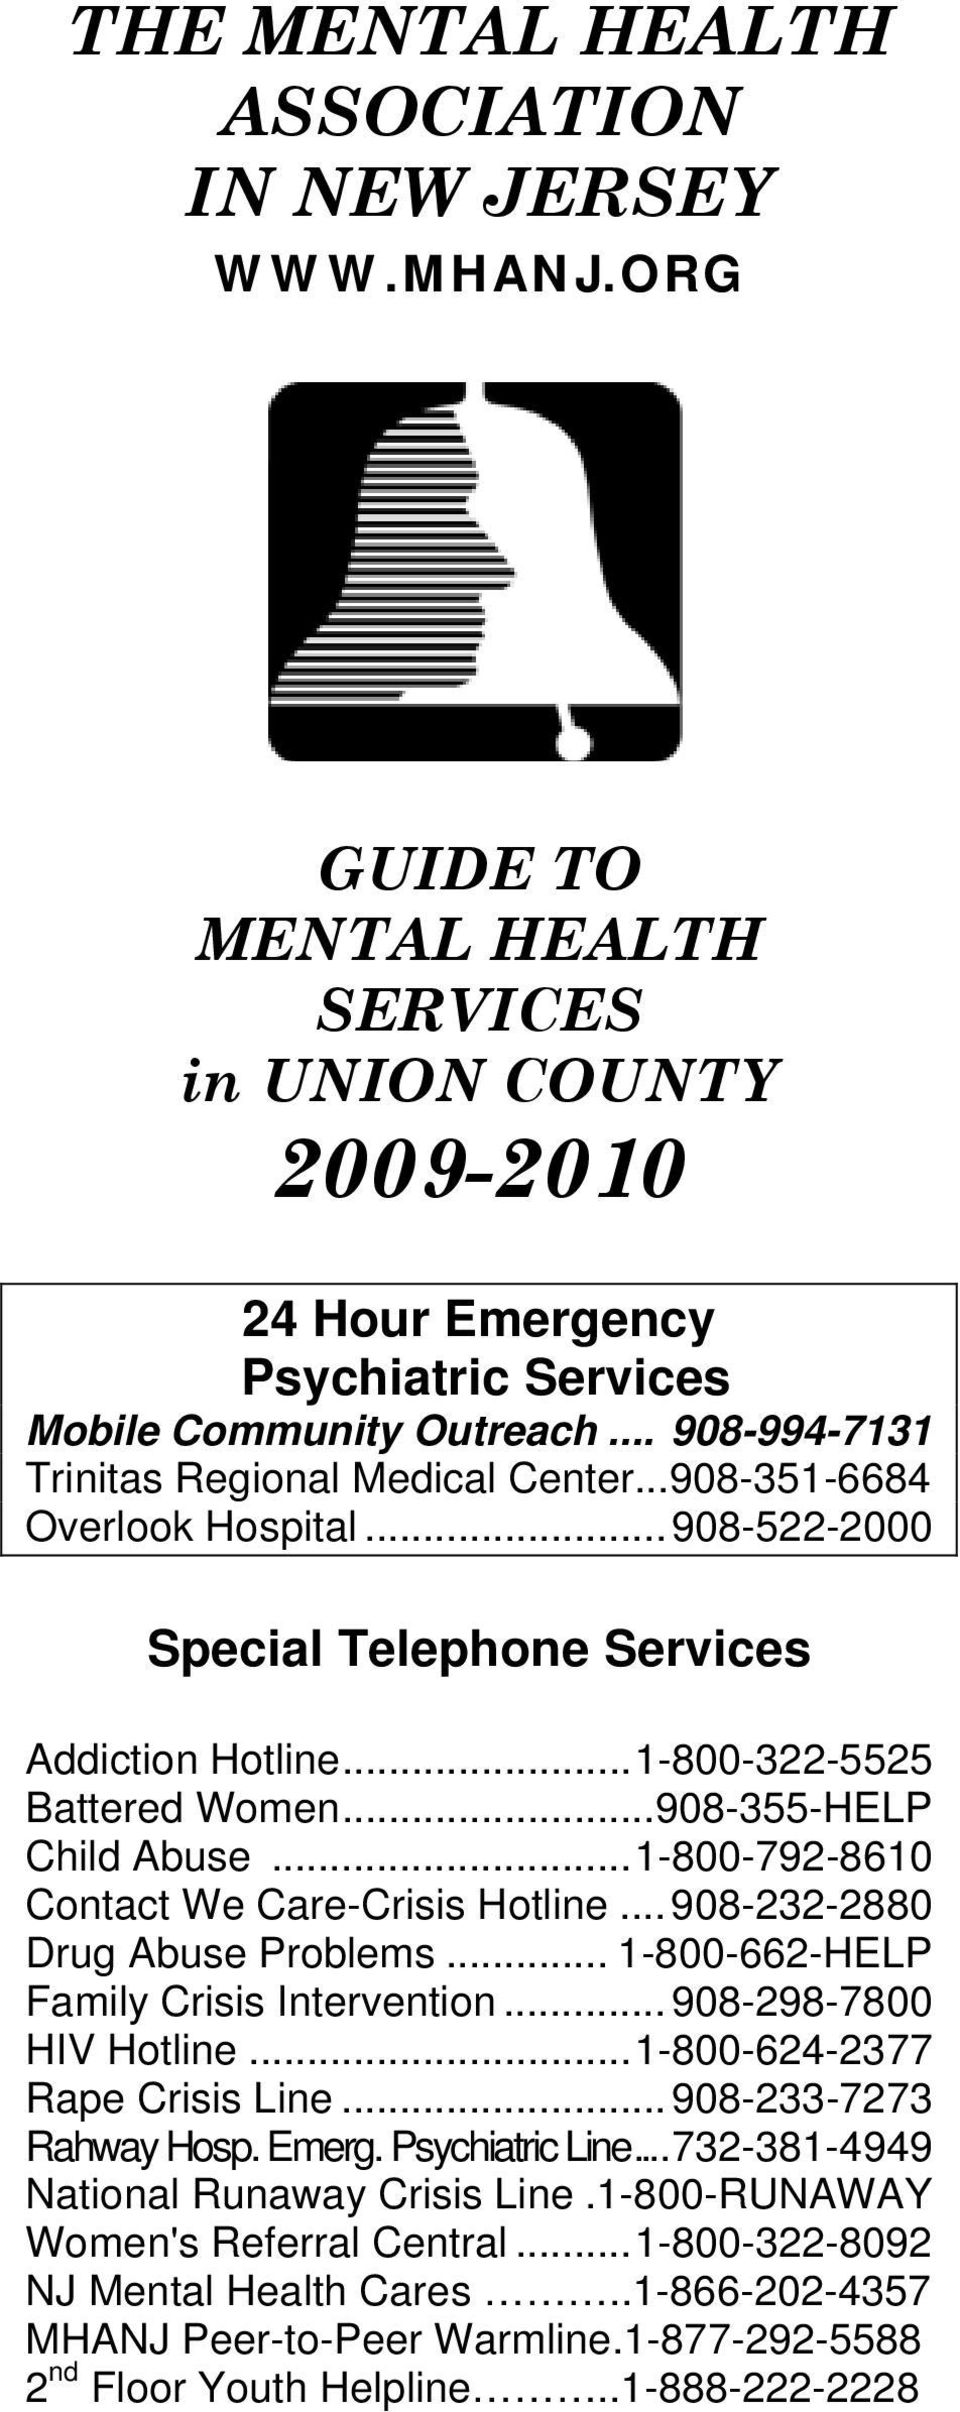 .. 908-355-HELP Child Abuse... 1-800-792-8610 Contact We Care-Crisis Hotline... 908-232-2880 Drug Abuse Problems... 1-800-662-HELP Family Crisis Intervention... 908-298-7800 HIV Hotline.